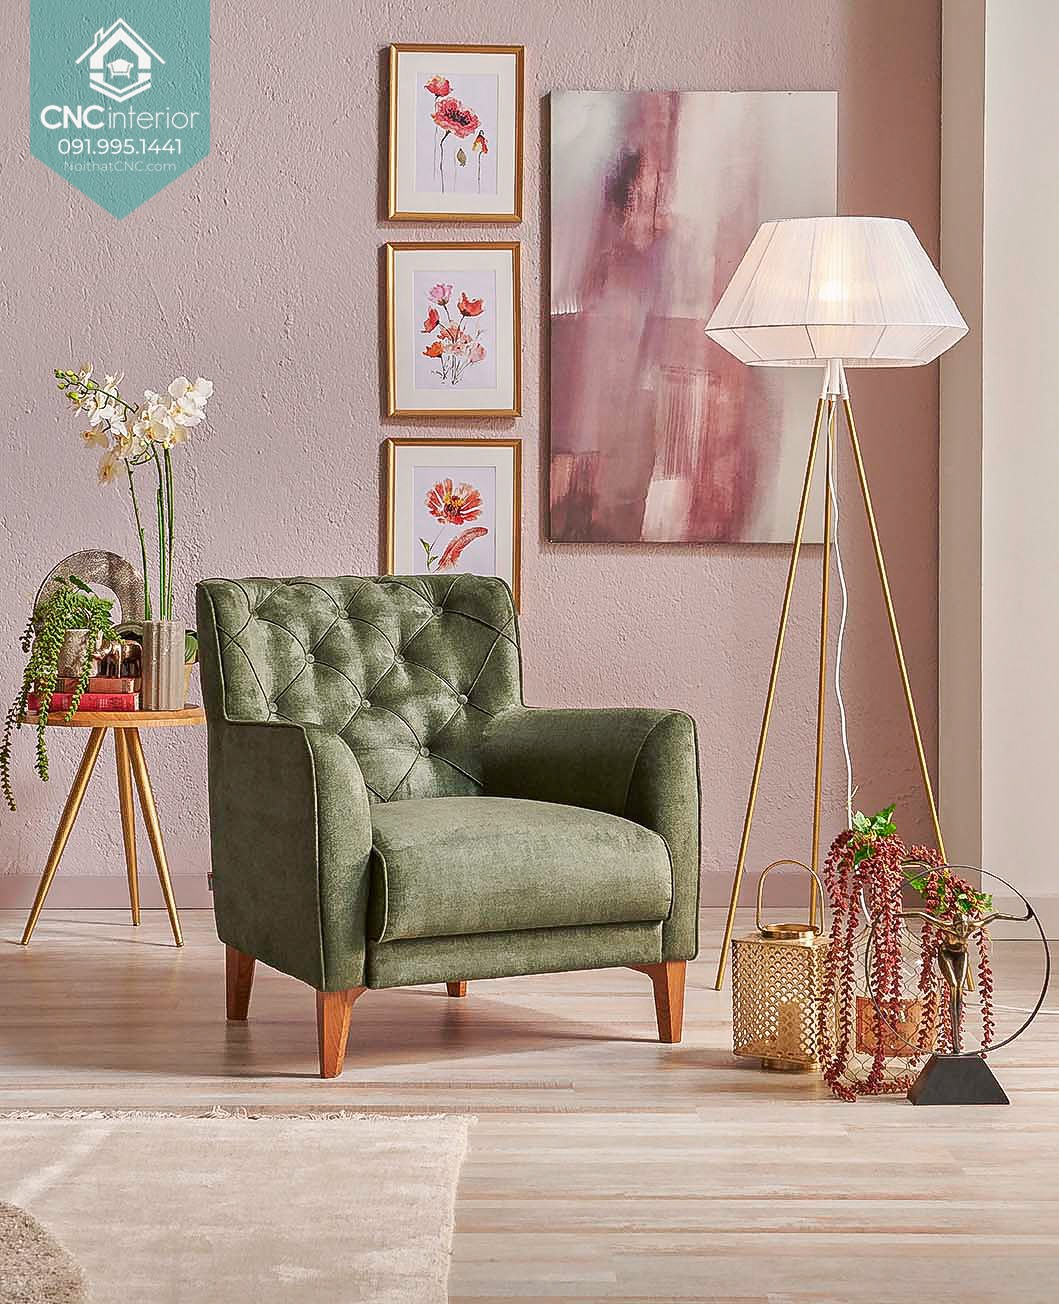 COMMON TYPES OF CHAIR VIETNAM TO MAKE YOUR SPACE STAND OUT 5